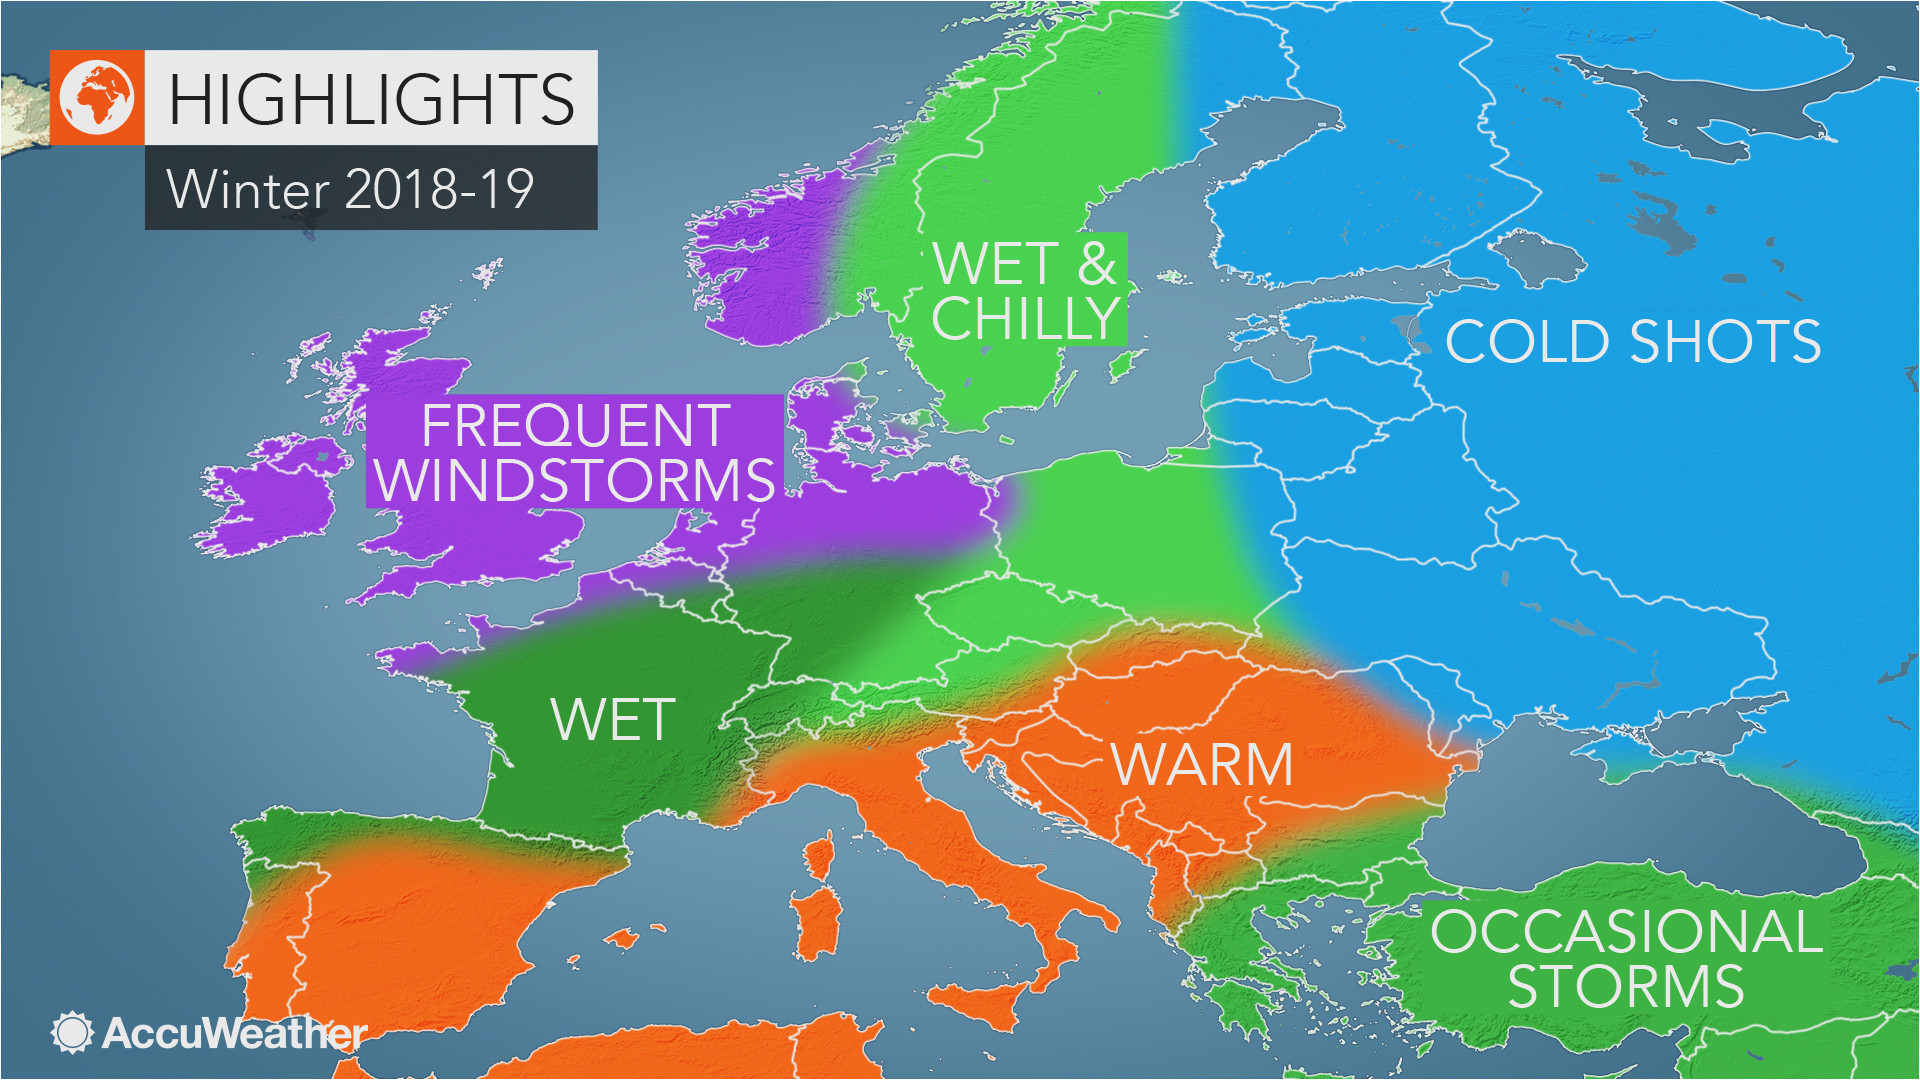 Colorado Springs Weather Map Accuweather S Europe Winter forecast for the 2018 2019 Season